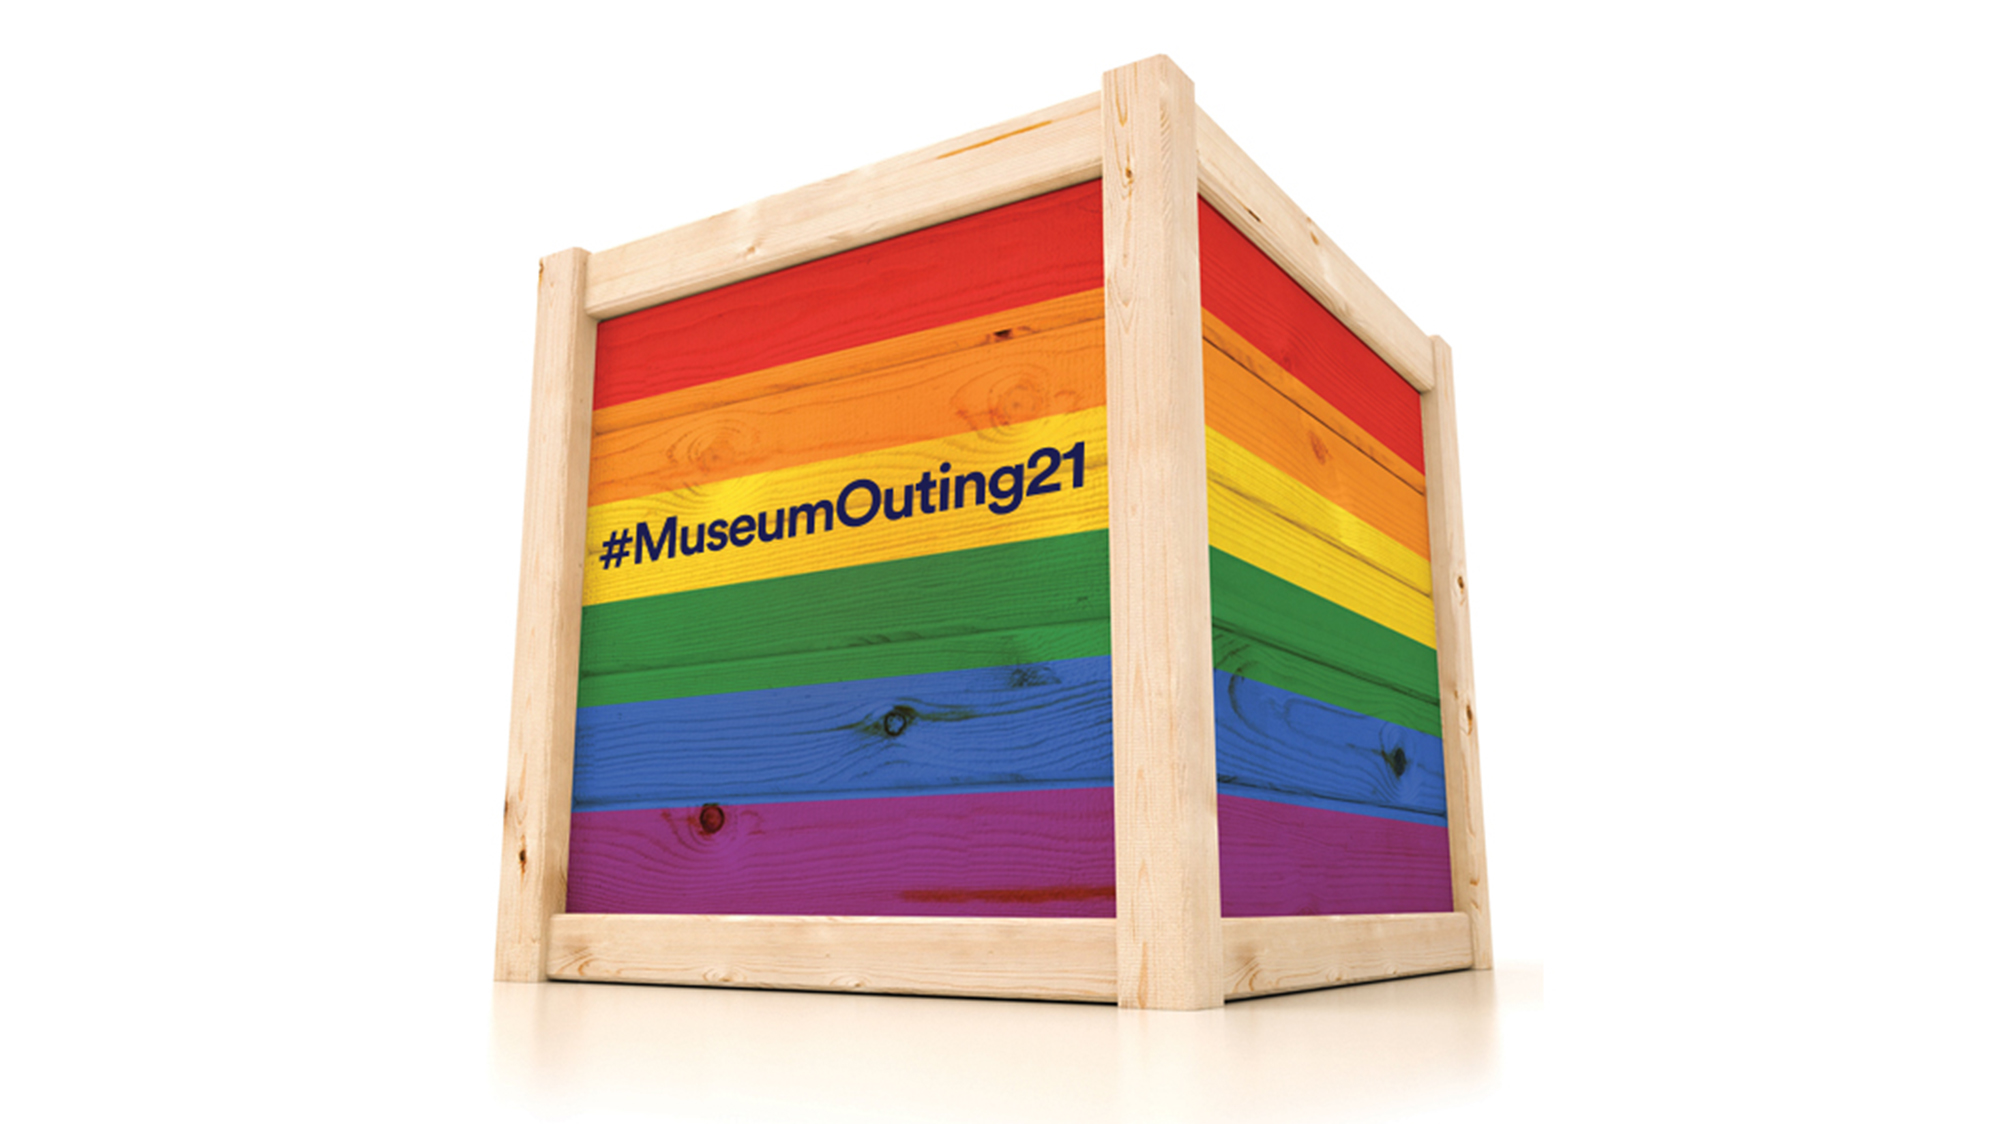 Photo of multicolours crate box with keywords: #MuseumOuting21